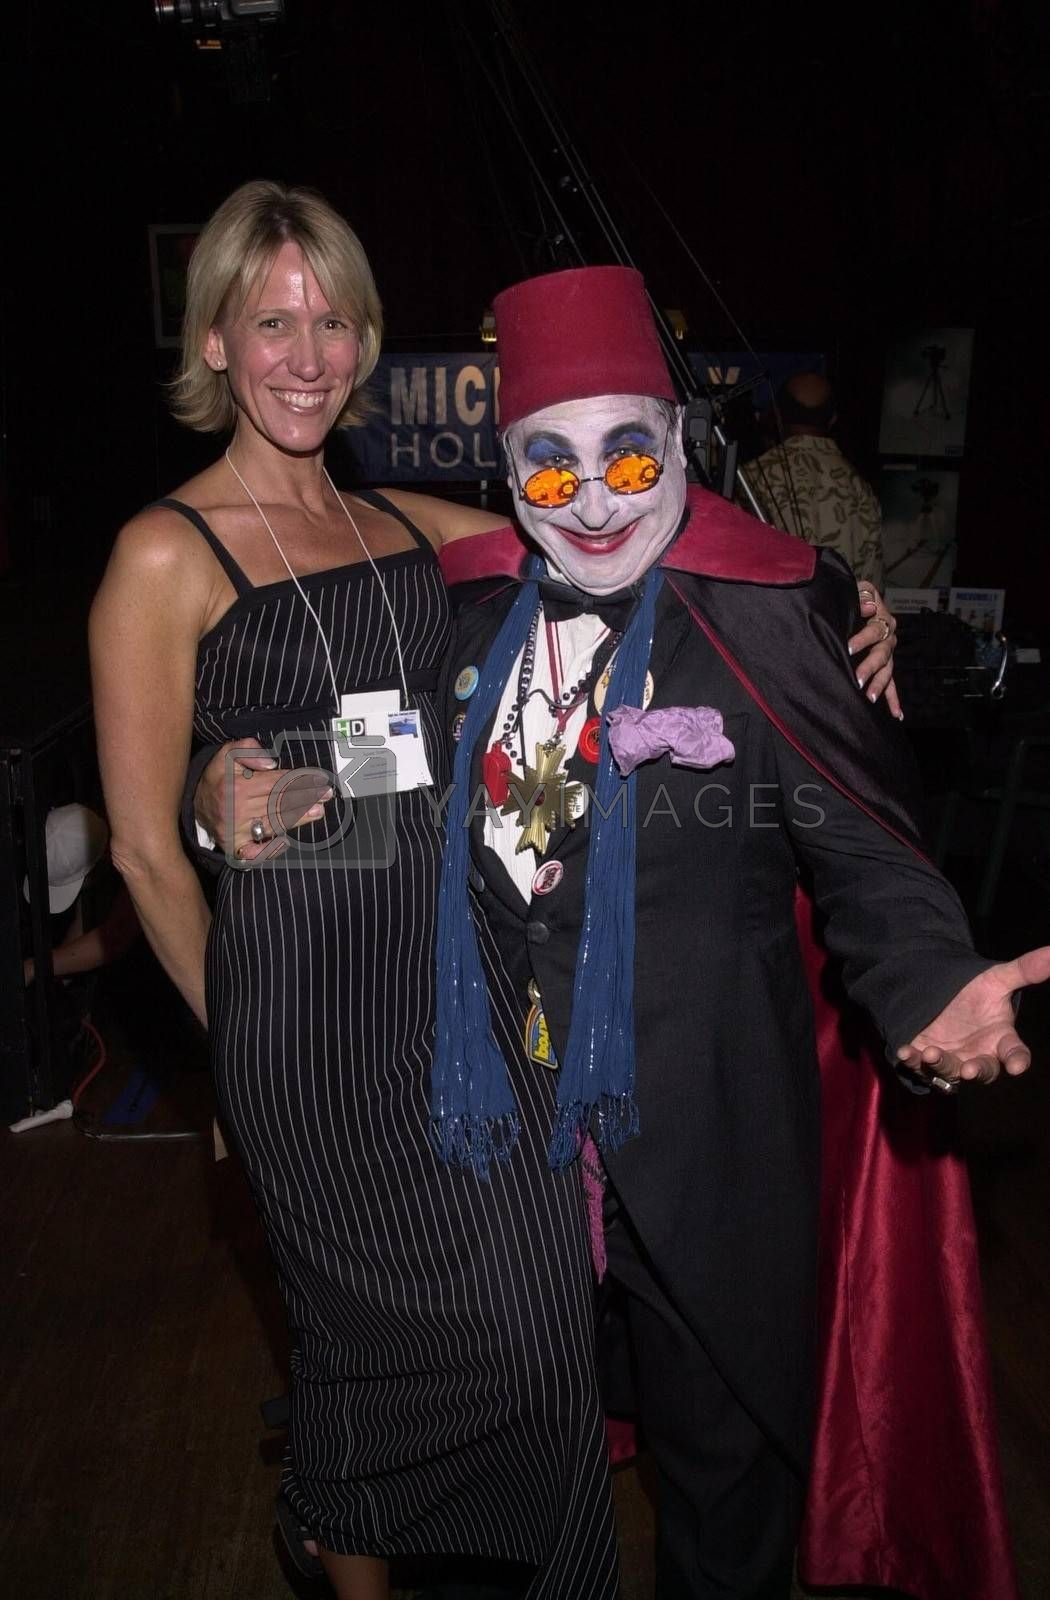 Count Smokula and friend at the Moviemaking Technology Showcase, featuring cutting edge movie technology, as well as two fashion shows, The Century Club, Century City, CA, 09-03-02